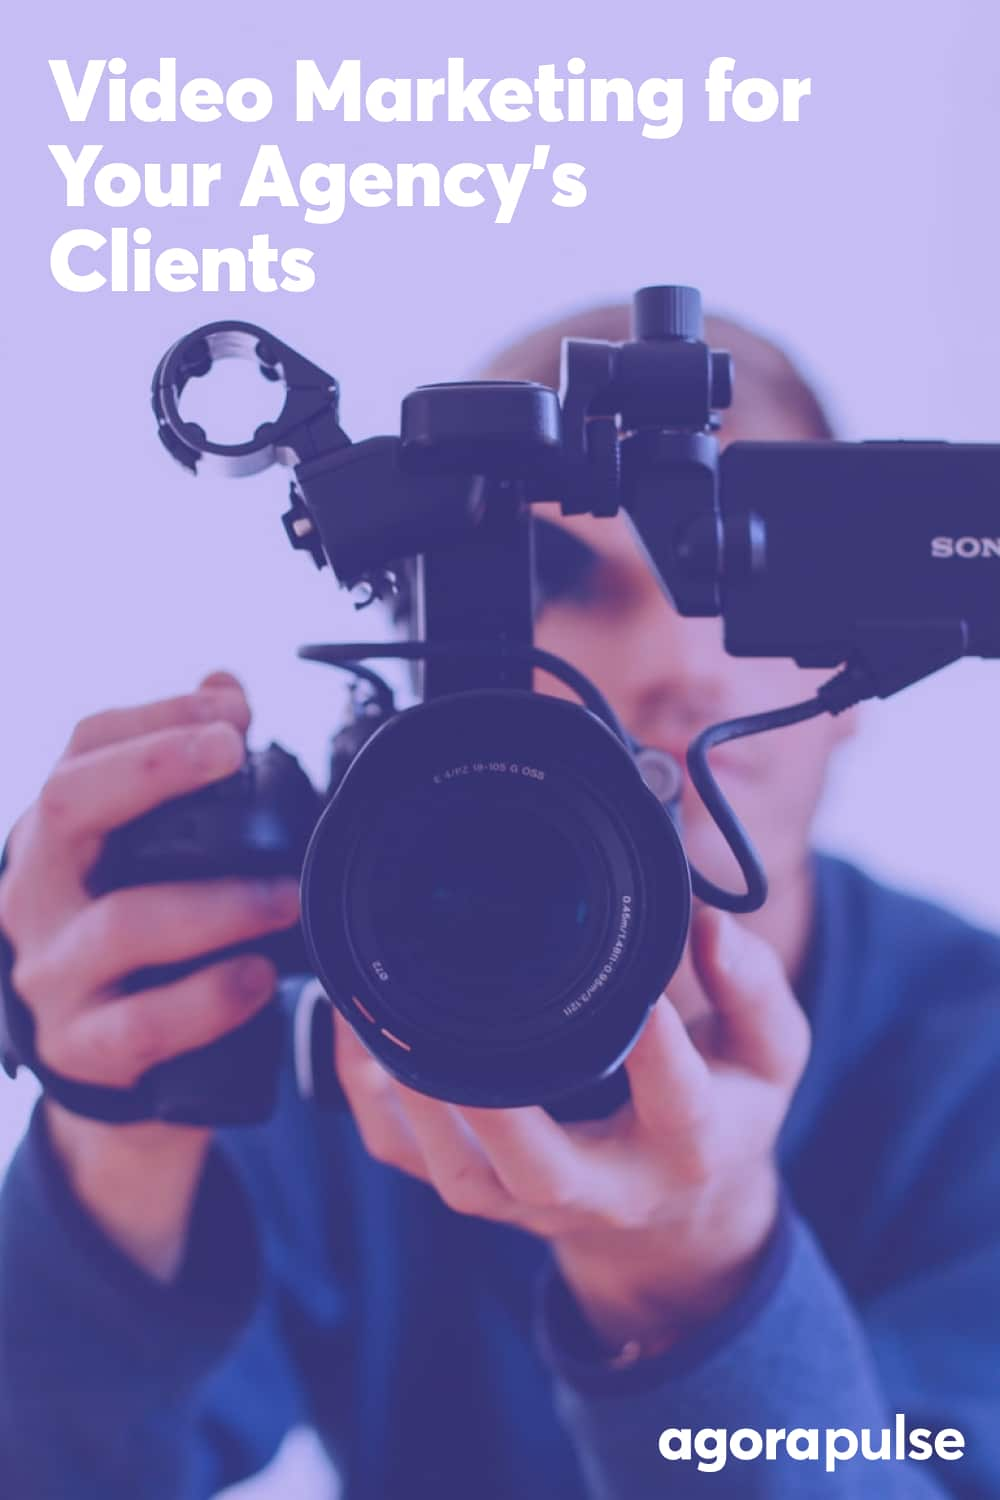 How Agencies Can Harness the Power of Video Marketing for Their Clients